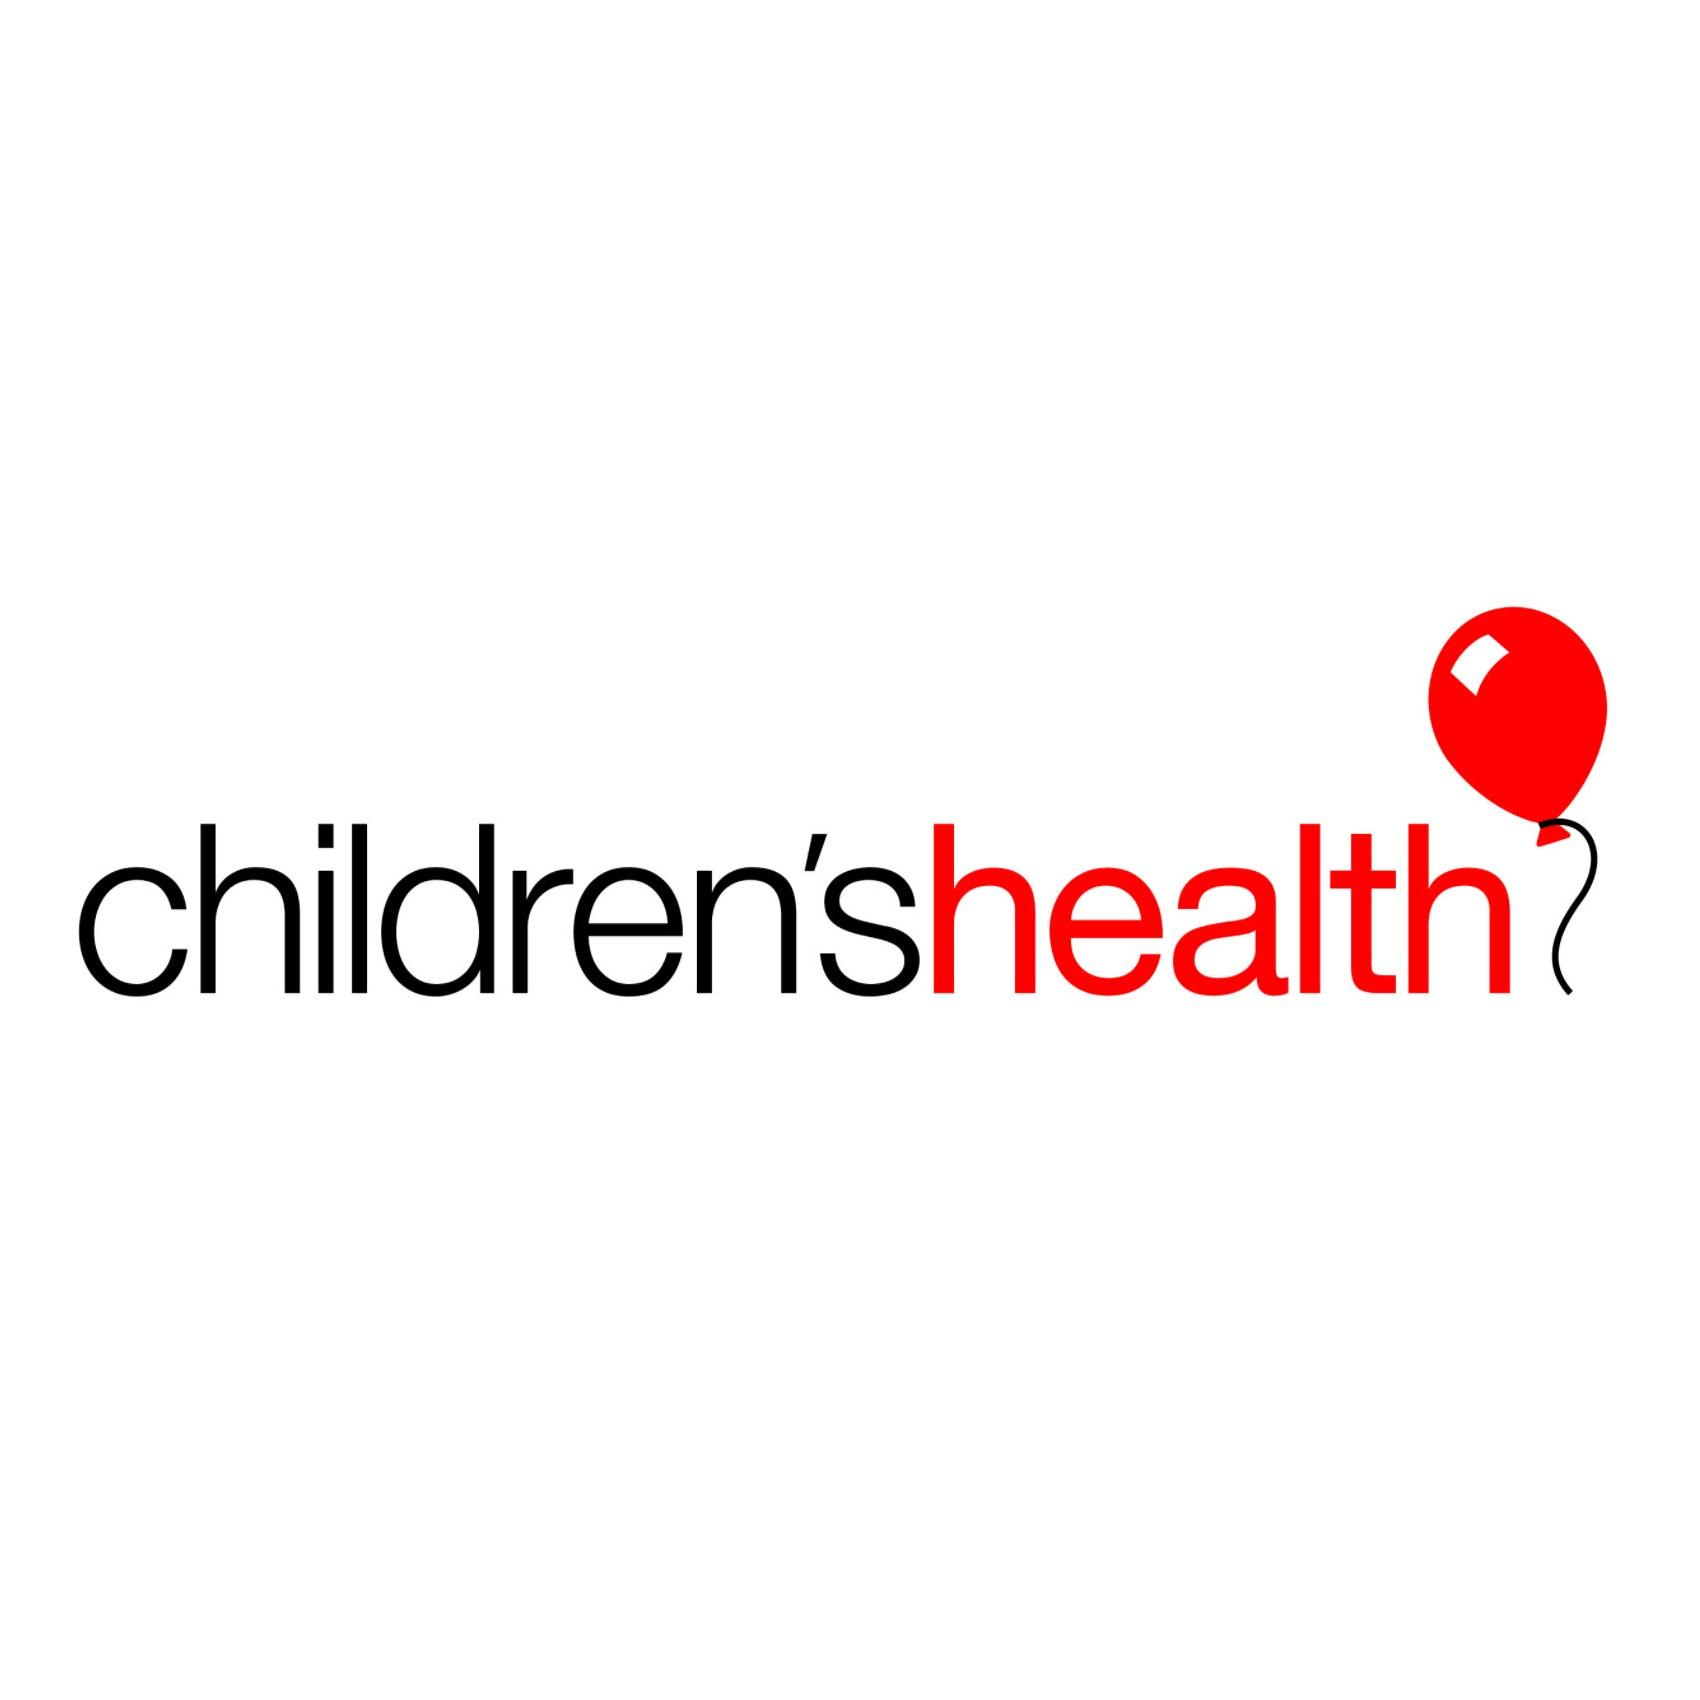 Children's Health Nephrology - Dallas - Dallas, TX 75235 - (214)456-2980 | ShowMeLocal.com